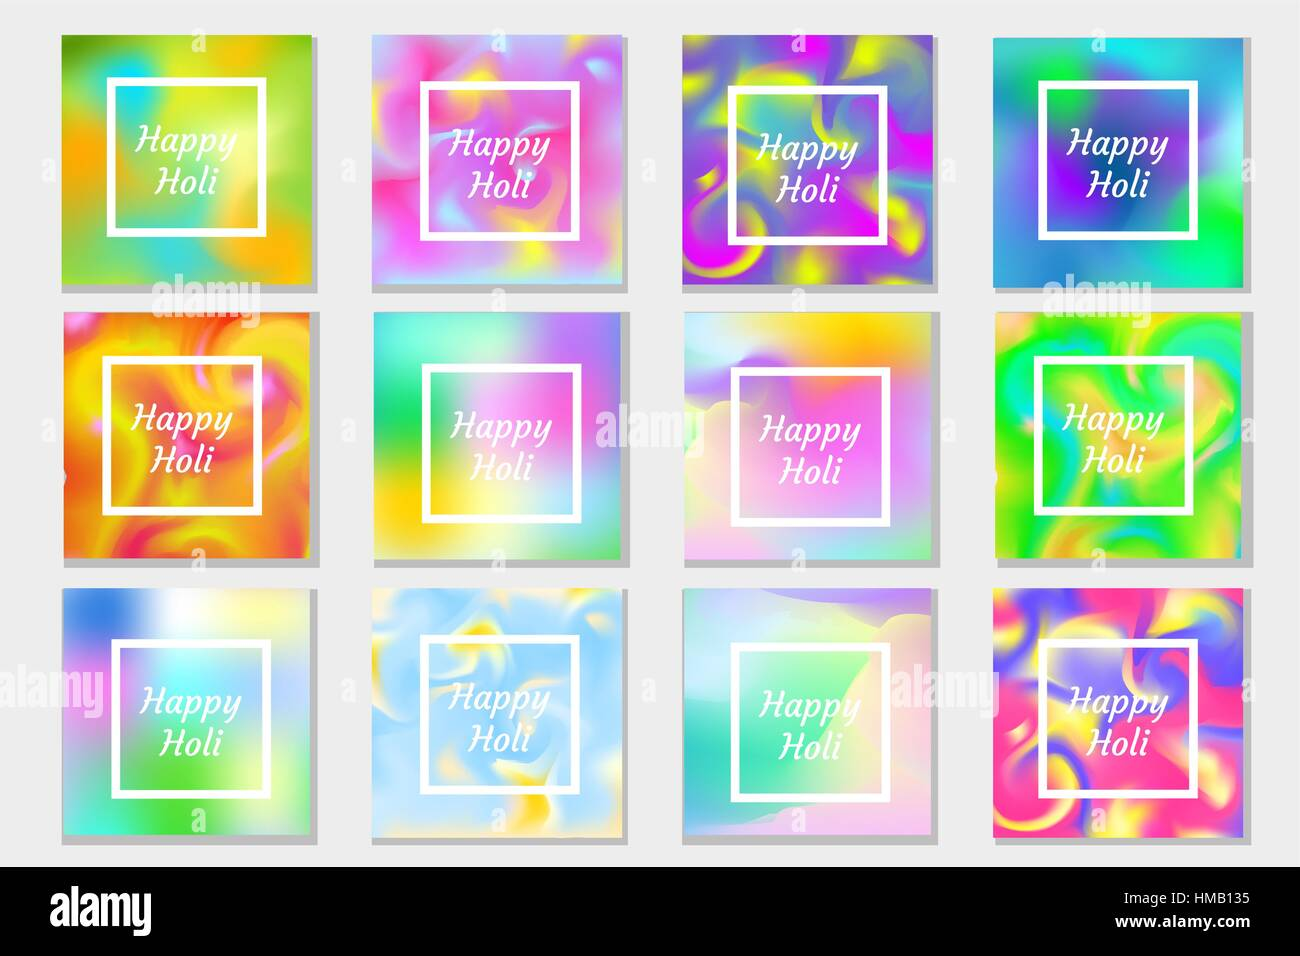 Happy holi festival in india set greeting card poster flyer stock happy holi festival in india set greeting card poster flyer stock vector art illustration vector image 133008041 alamy stopboris Images